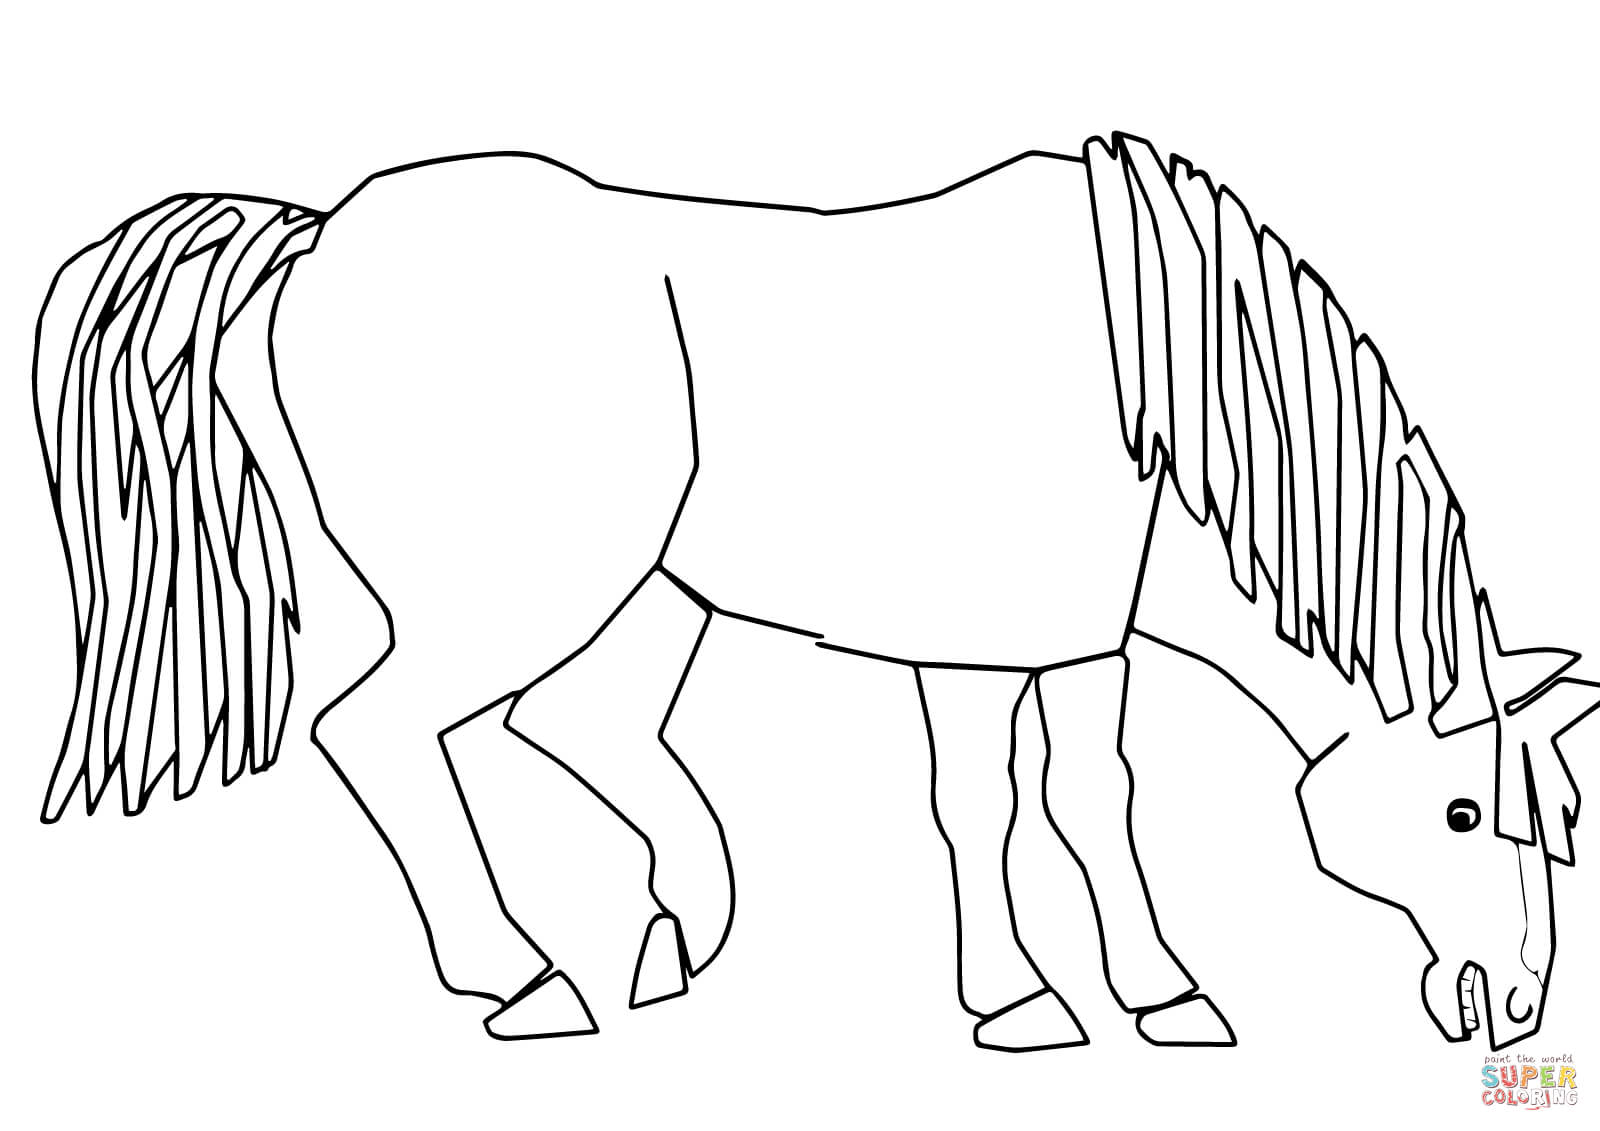 Blue Horse Blue Horse What Do You See Coloring Page